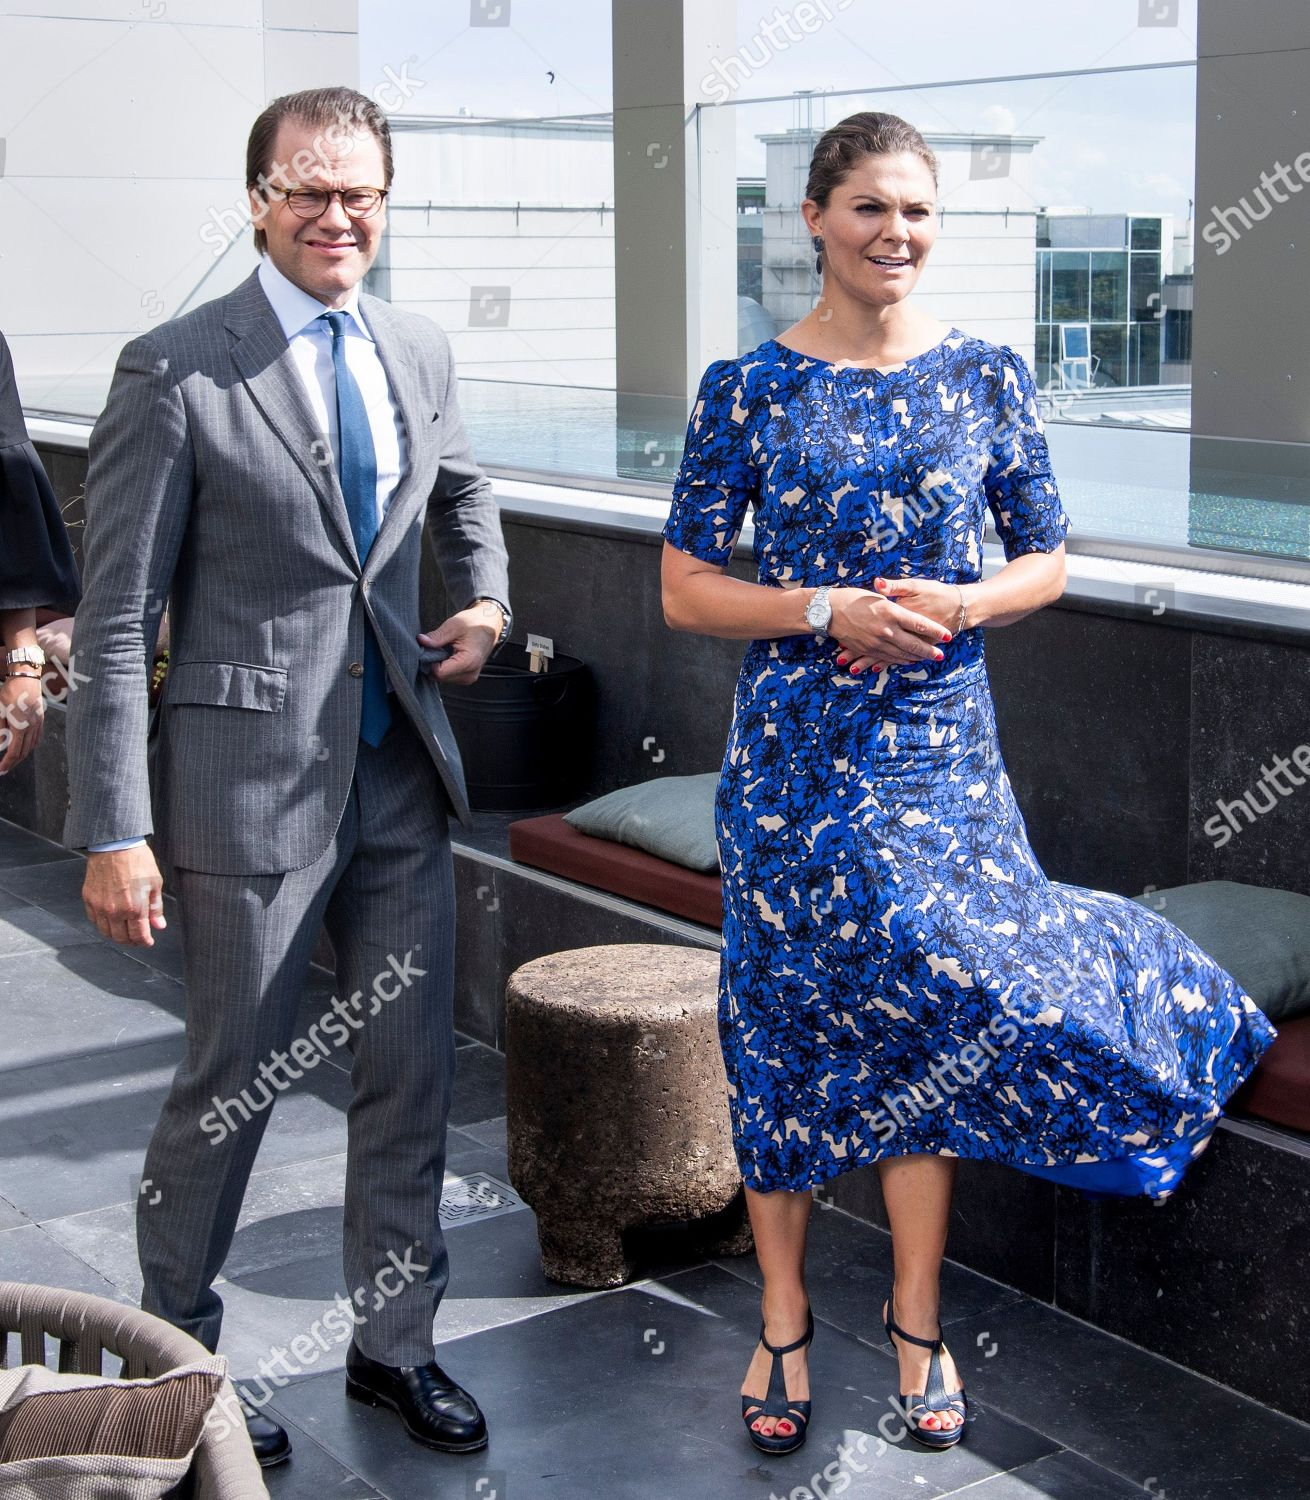 prince-daniel-and-crown-princess-victoria-at-visita-stockholm-sweden-shutterstock-editorial-10750019v.jpg